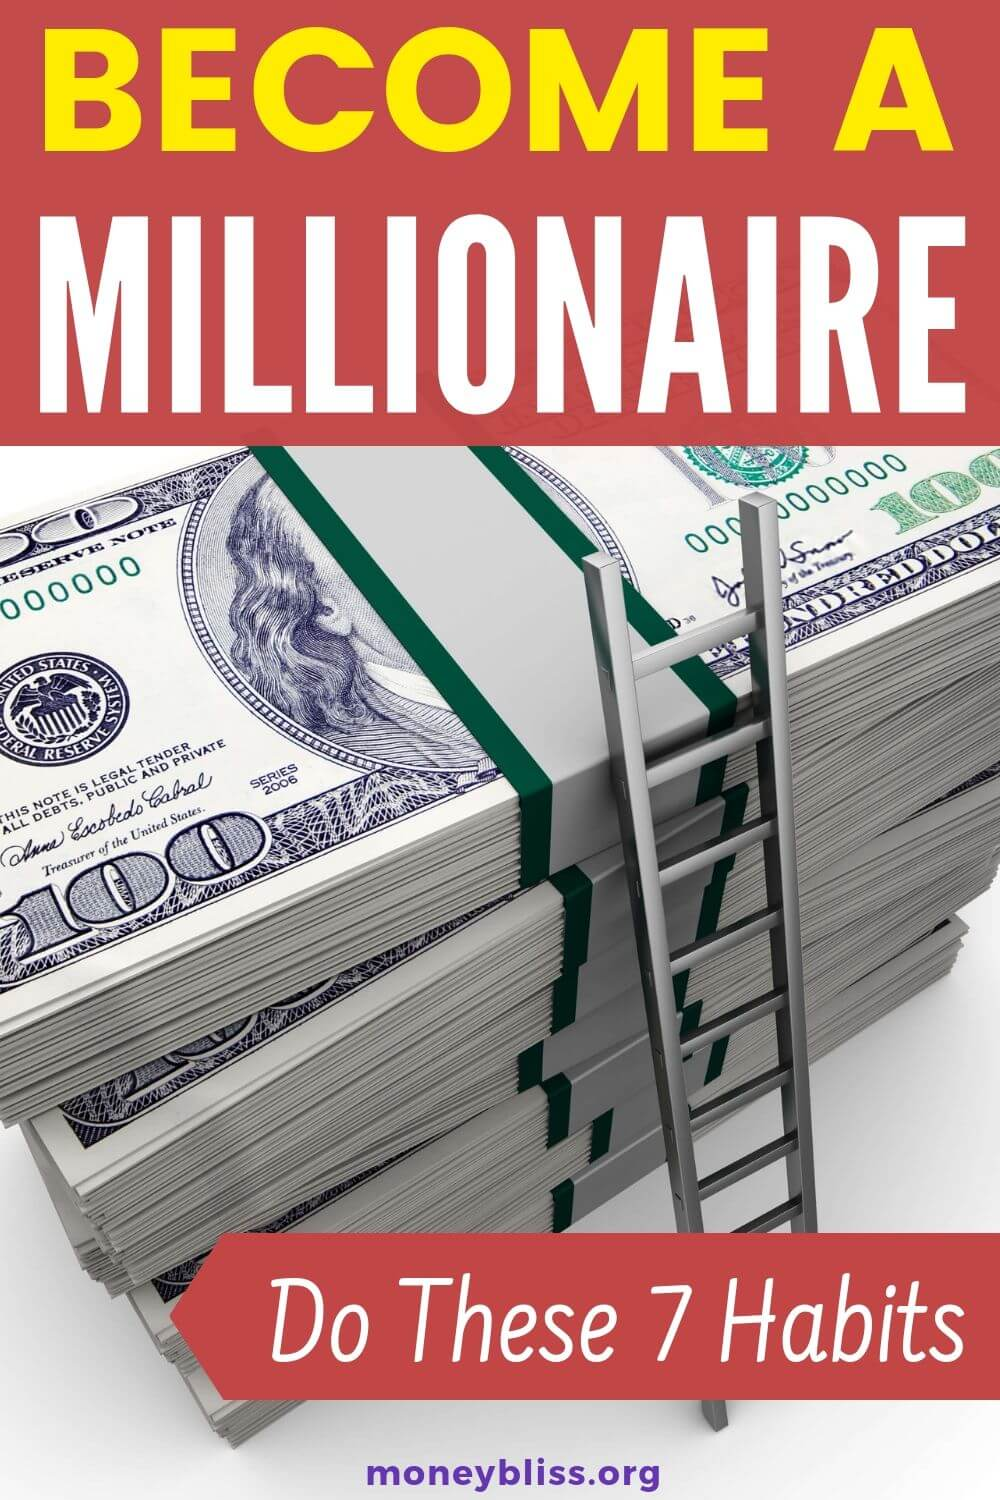 Learn how to become a millionaire. All it takes is knowing these millionaire habits. Change your money mindset and lifestyle today.